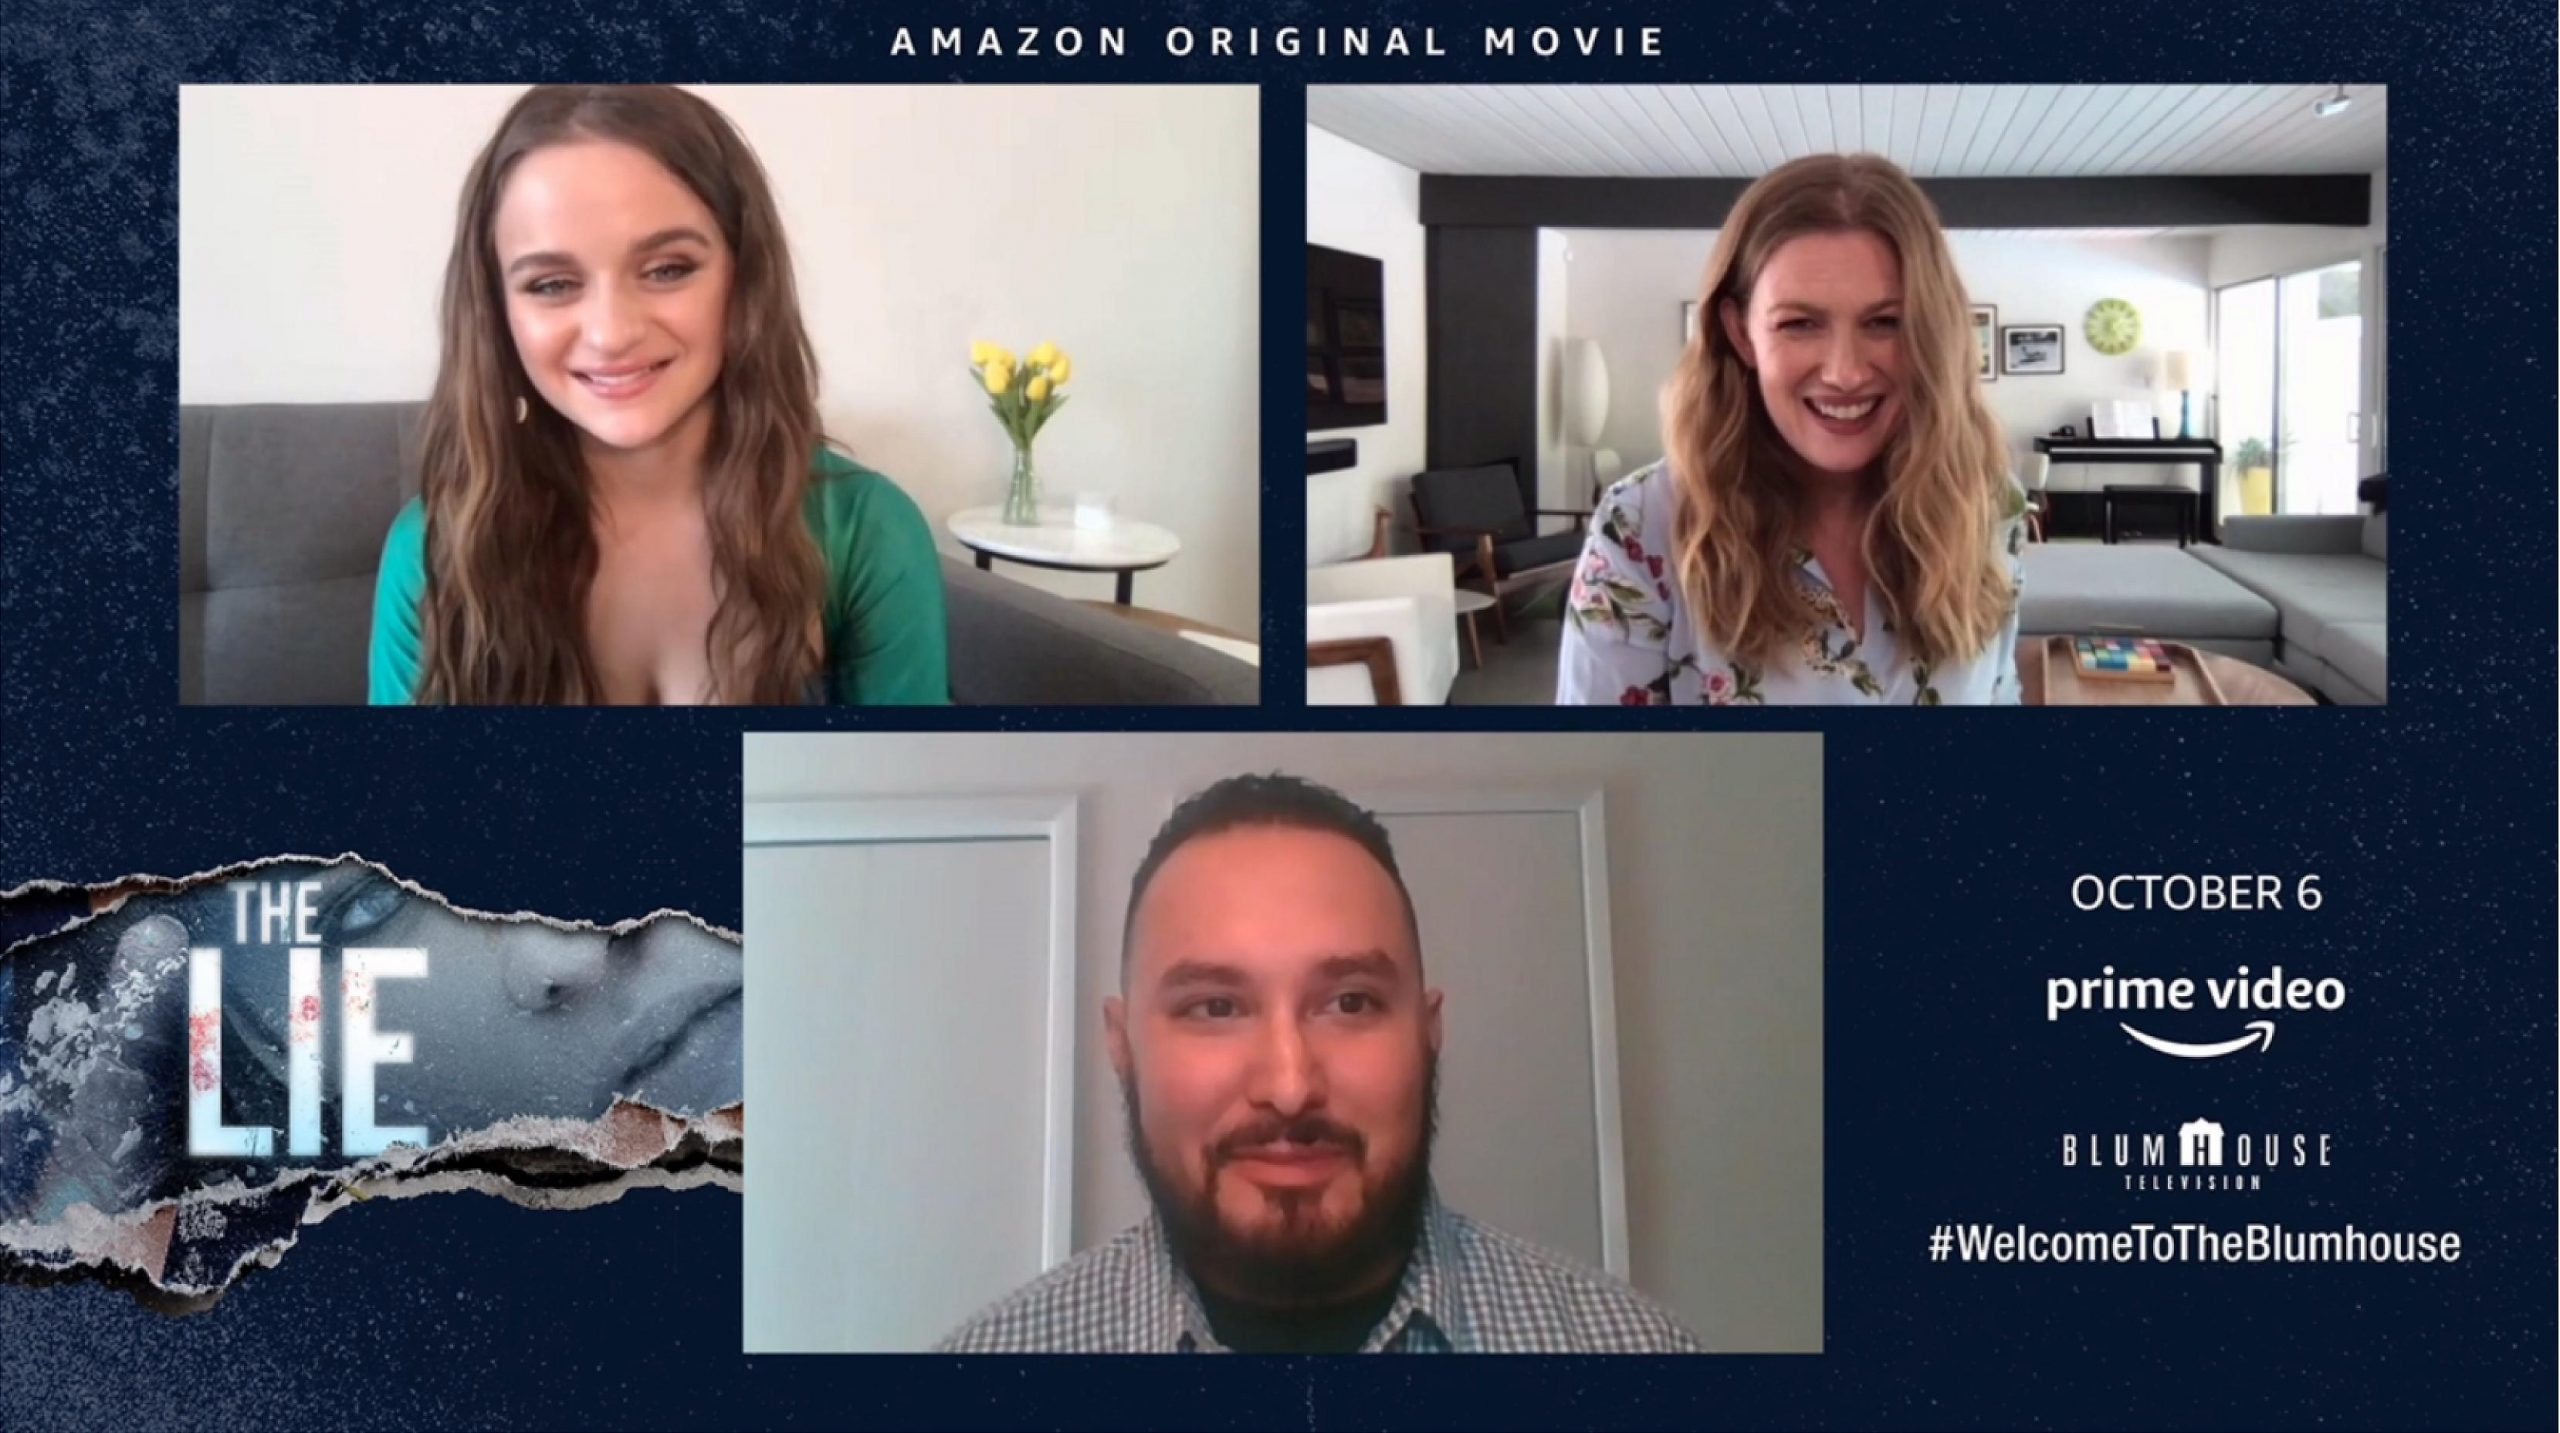 Joey King and Mireille Enos On How Far Would You Lie For Your Child? Amazon Studios' The Lie [Exclusive Interview]